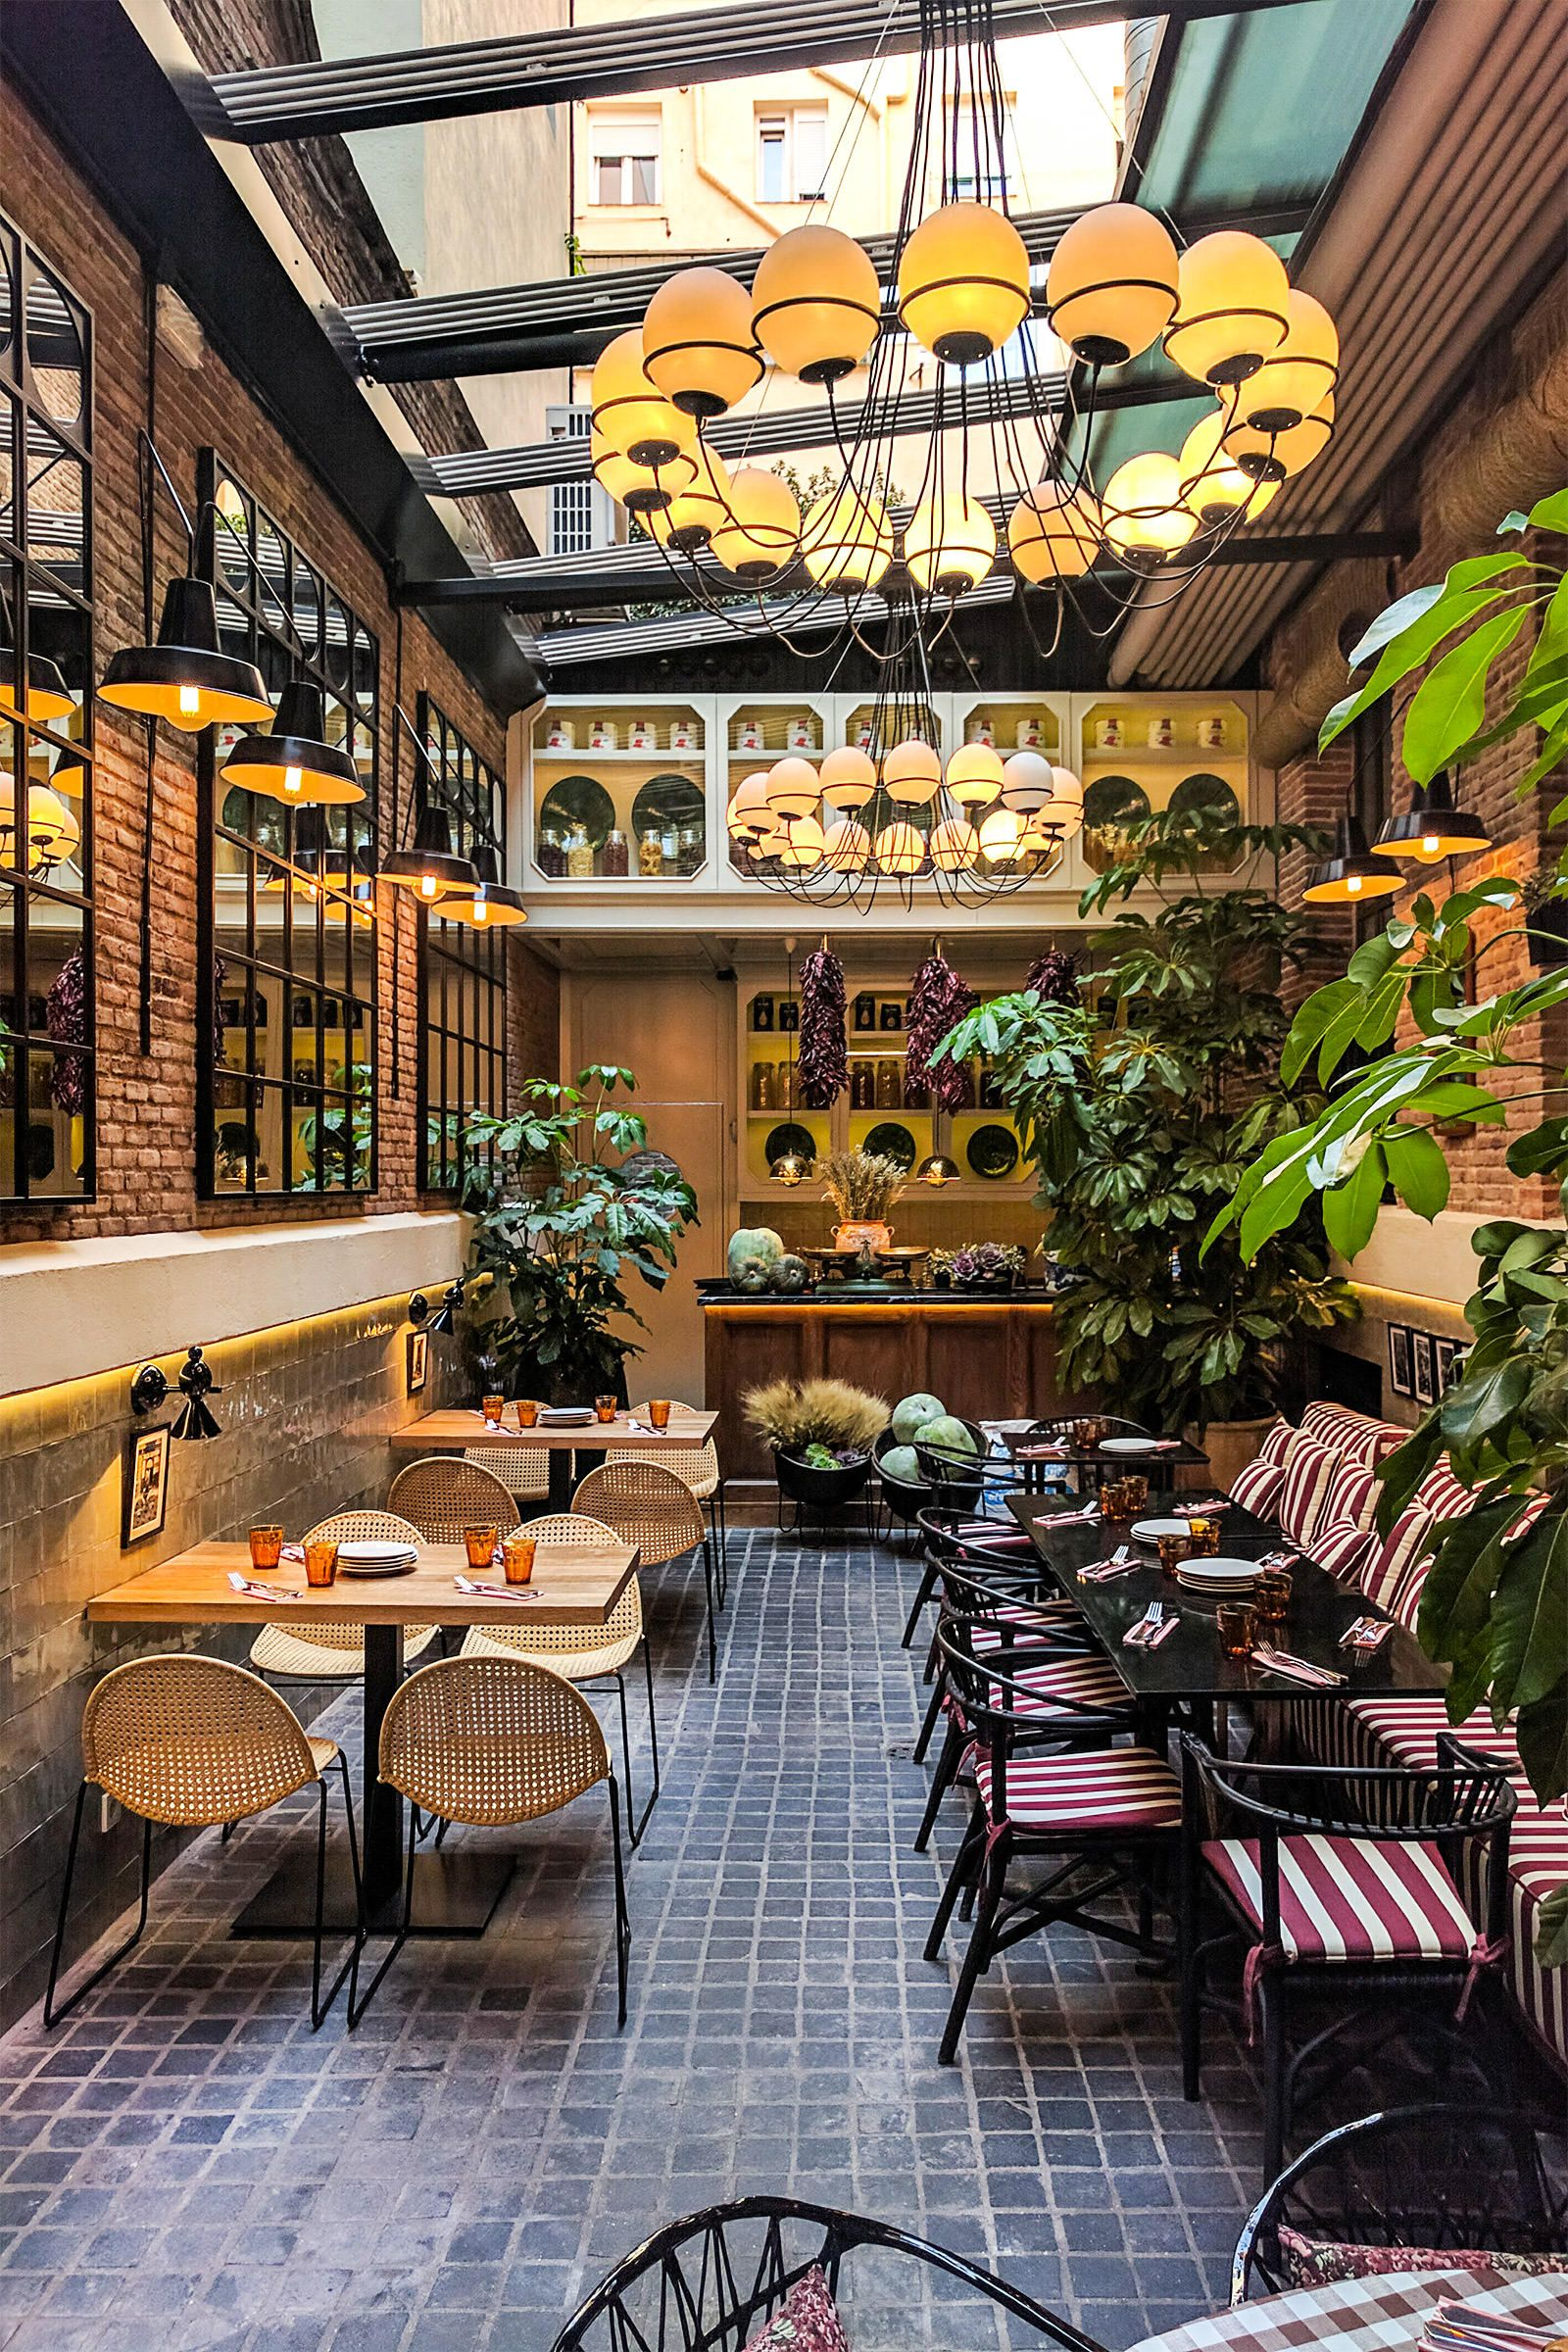 The Winter Terraces In Madrid To Enjoy Cold Days Of The City In 2020 Madrid Restaurants Madrid City Madrid Travel